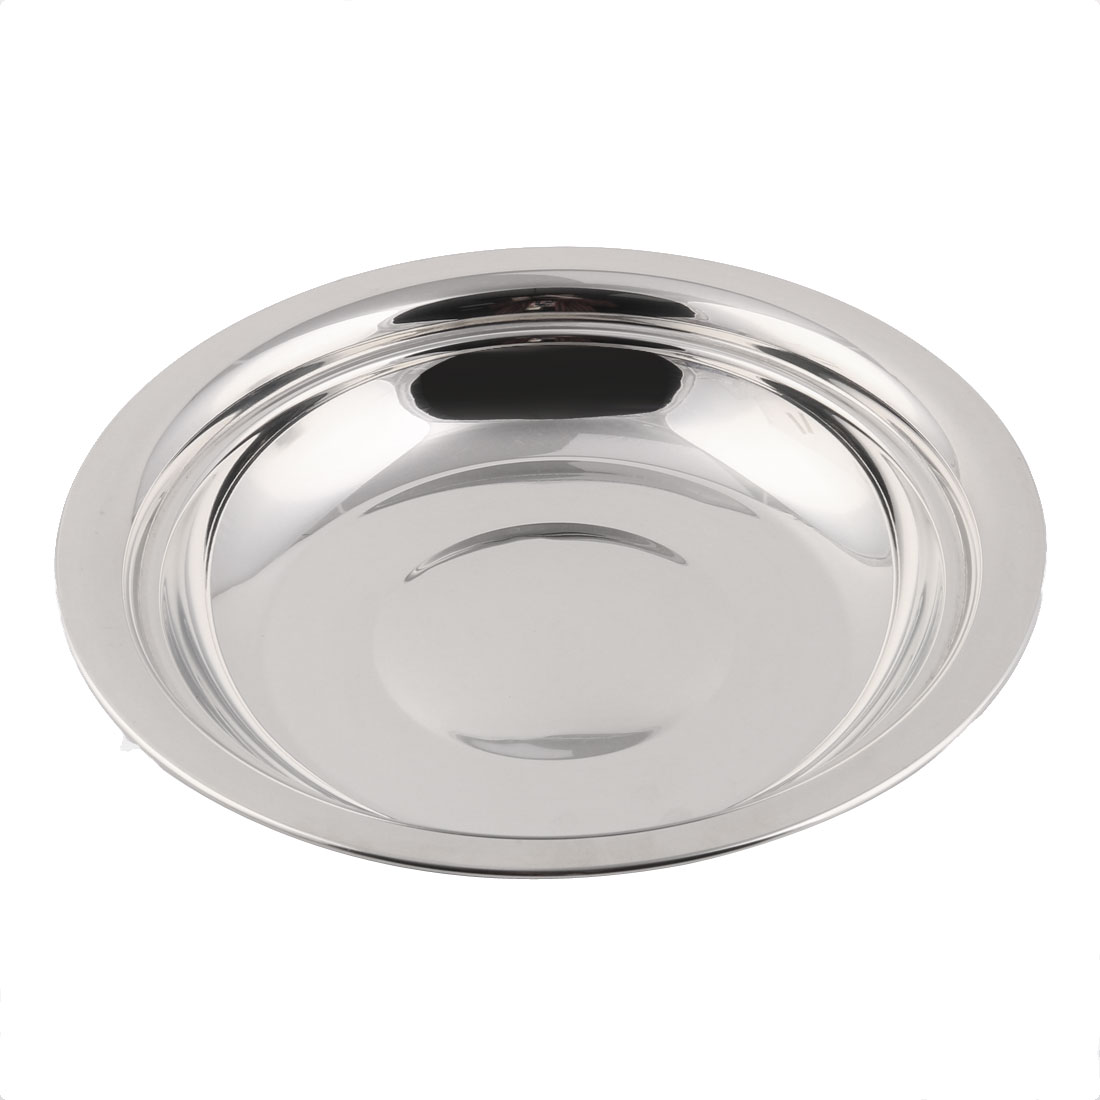 Home Kitchen Metal Round Shaped Food Nut Container Holder Plate Tray Silver Tone - image 2 of 2